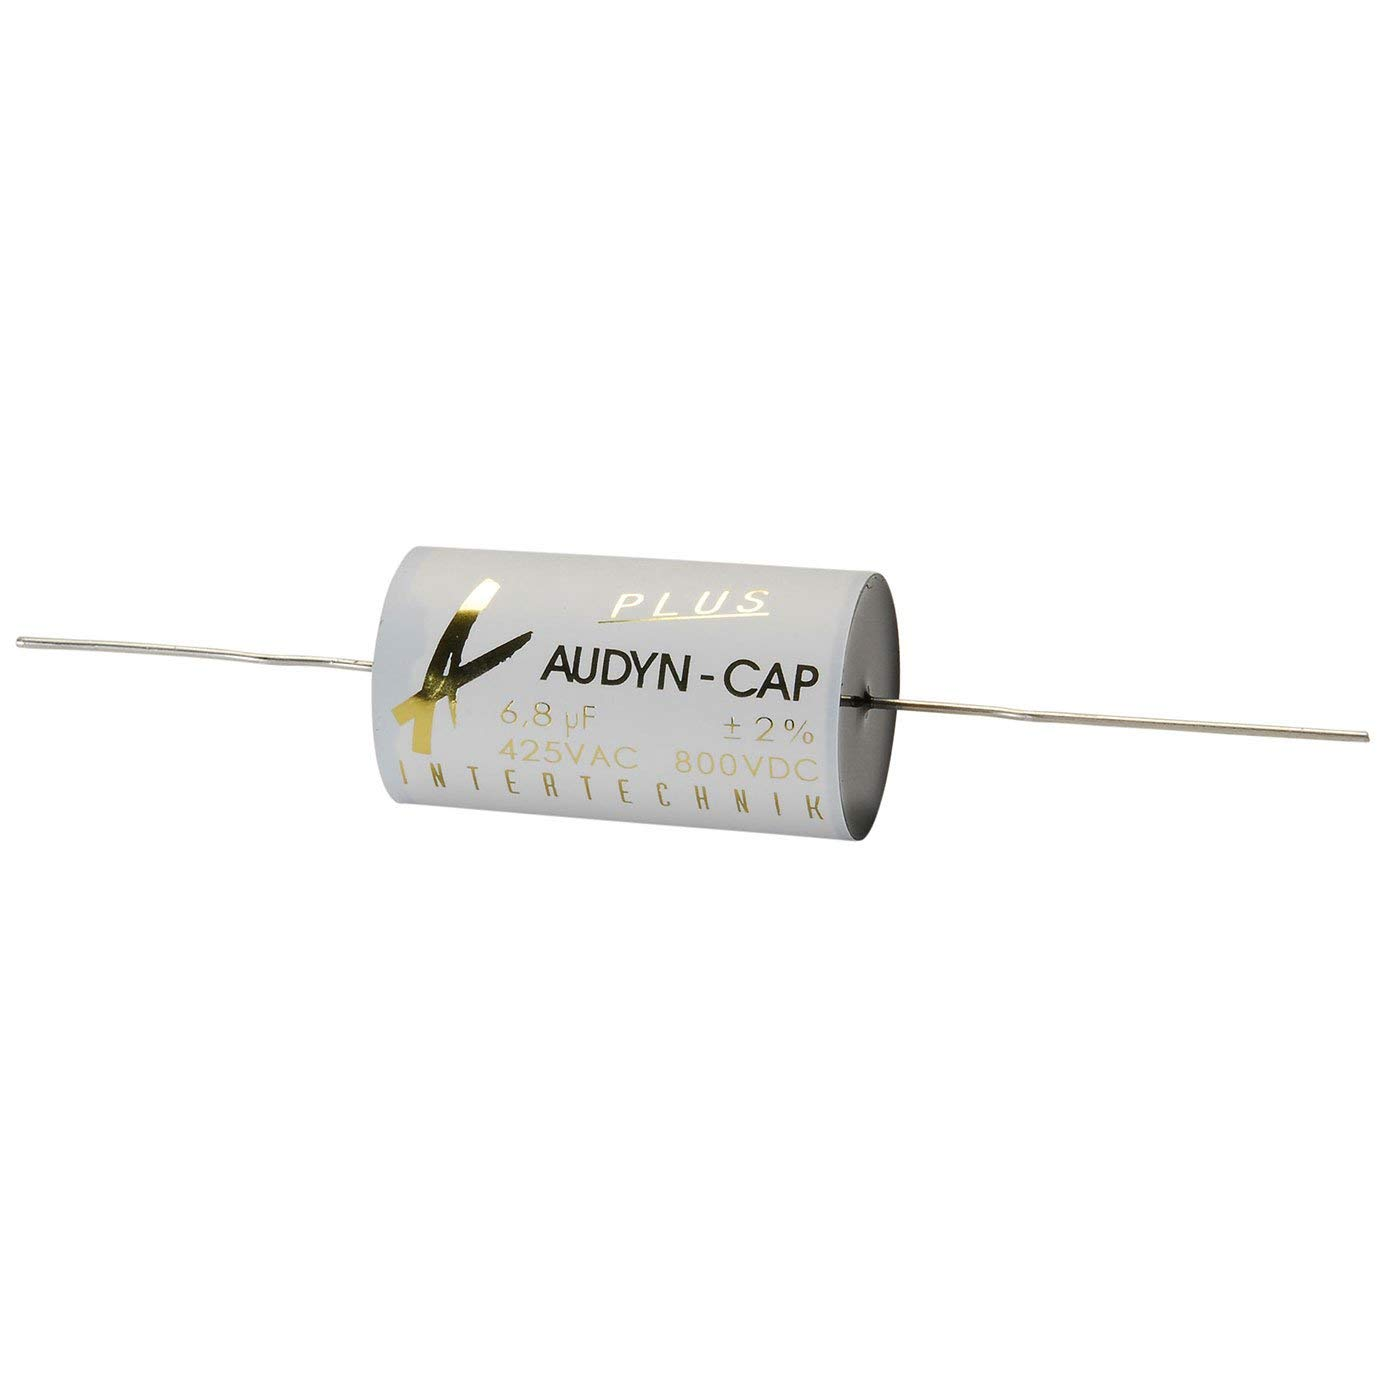 Cheap 800uf Aluminum Capacitor Find Deals Elco 100uf 160v Get Quotations Audyn Cap Plus 68uf 800v Double Layer Mkp Metalized Polypropylene Foil Crossover